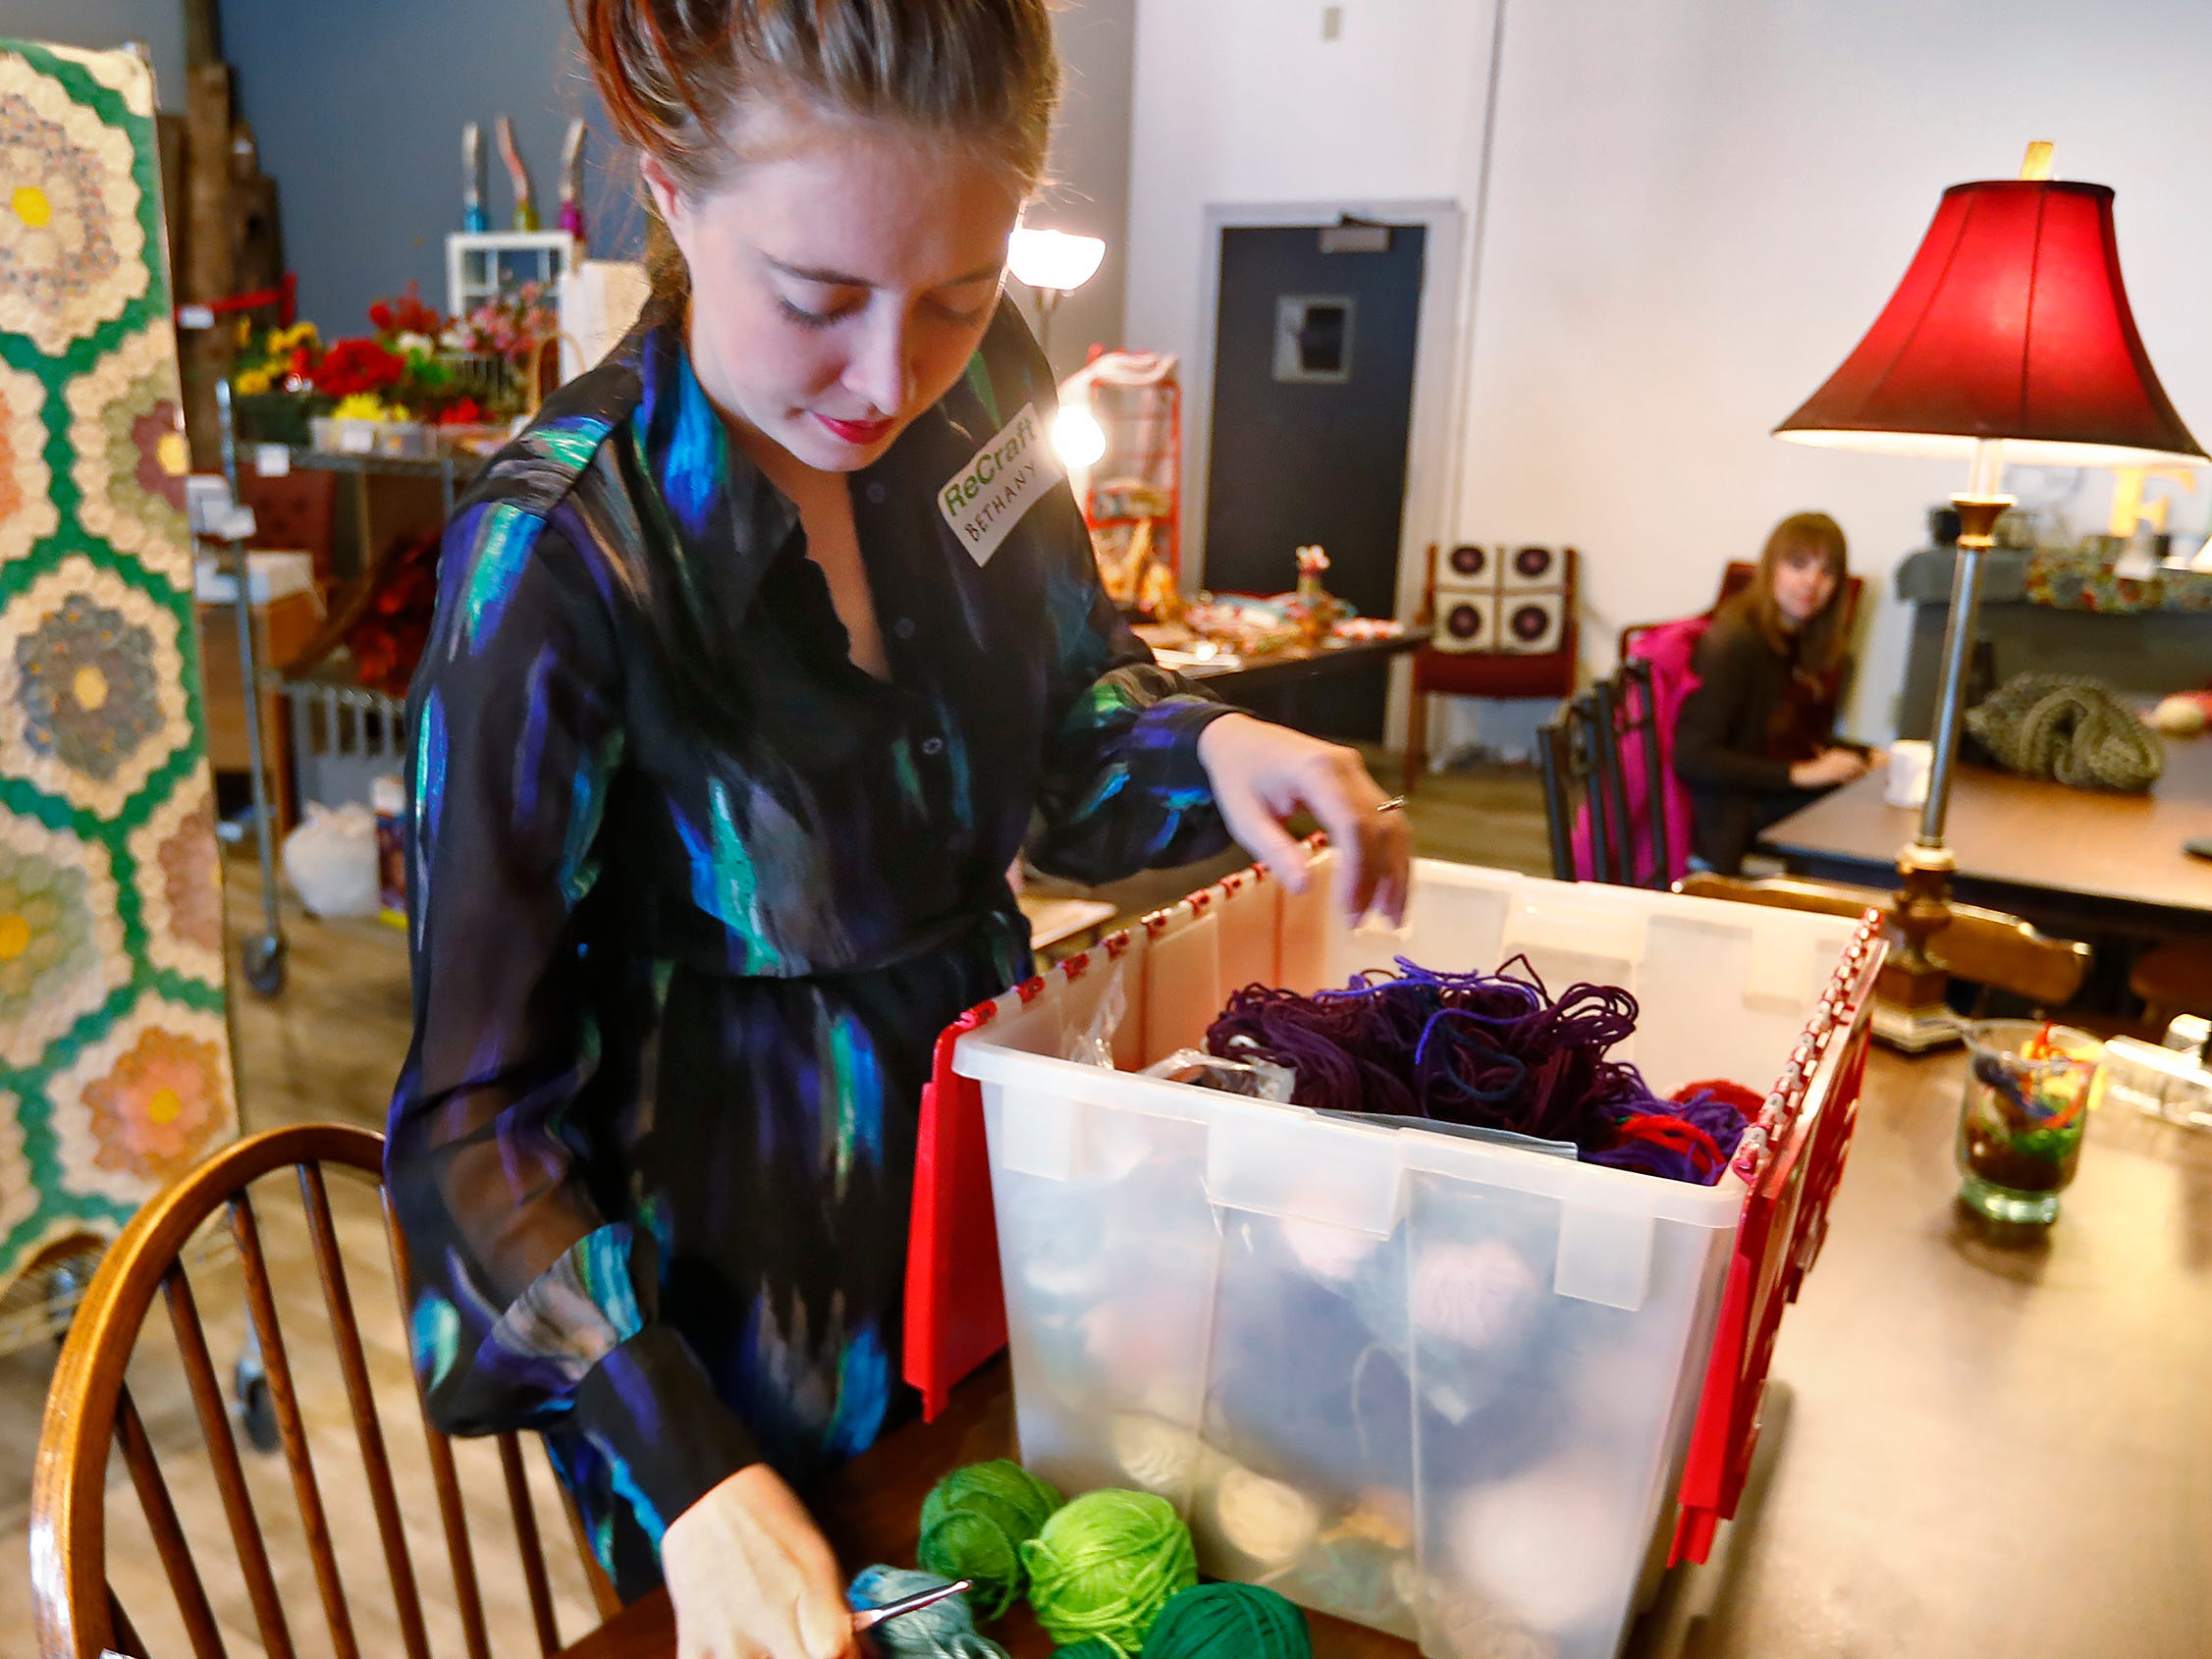 Bethany Daugherty gets ready to crochet at ReCraft, Tuesday, Dec. 11, 2018.  ReCraft was born out of Daugherty's love of crafting and her interest in environmental activism.  At the secondhand craft and hobby store, Daugherty also teaches workshops.  Sustainability and environmentalism are the focus of the store.  This day at ReCraft is Giving Back Day.  Customers are welcomed to come in to knit or crochet hats and scarves for the homeless.